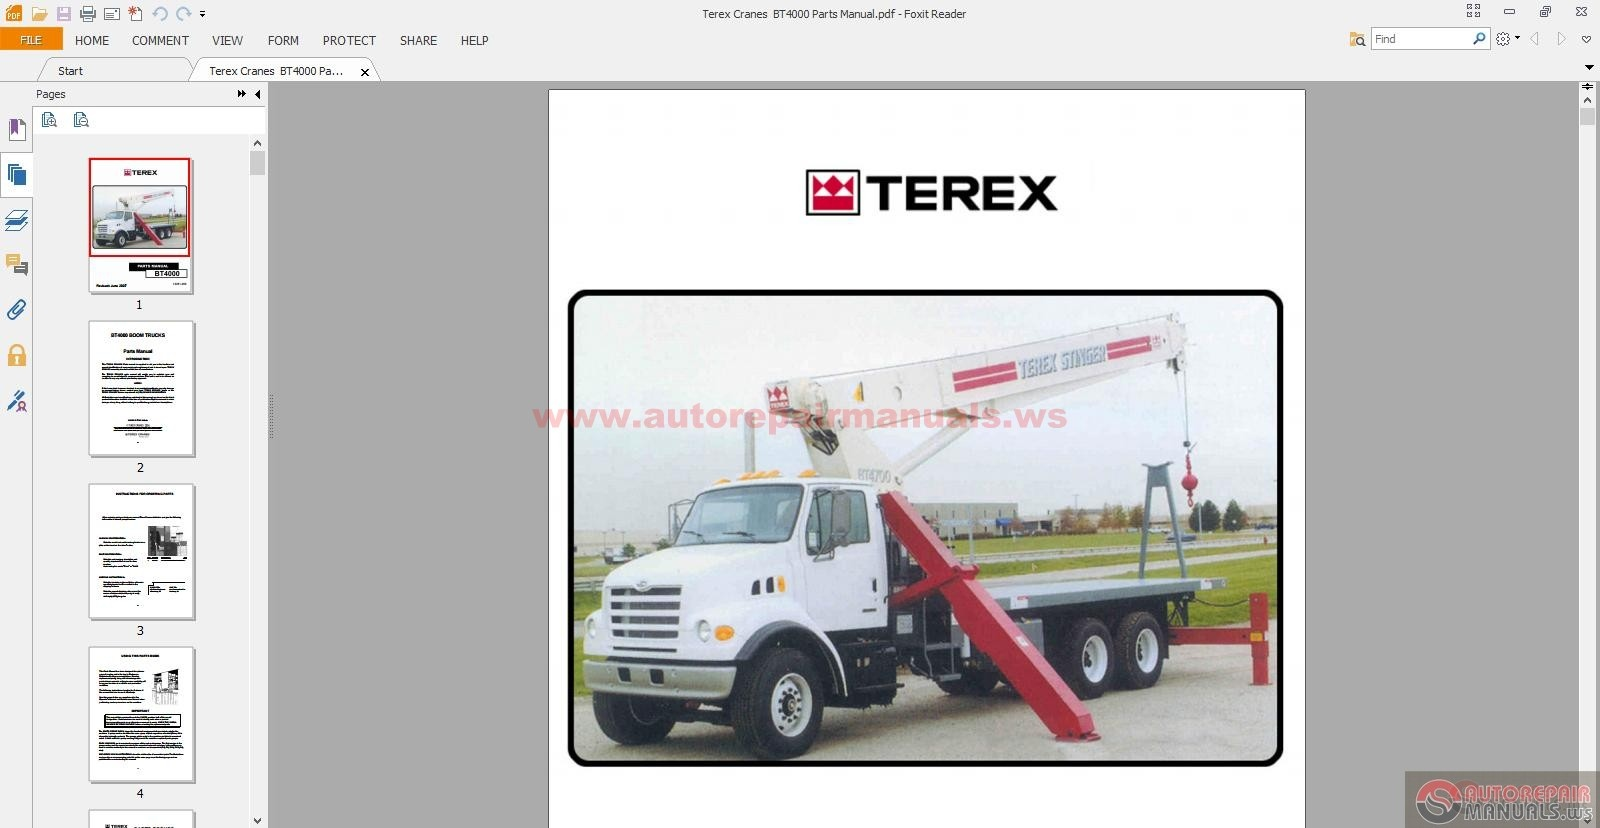 Terex Cranes BT4000 Parts Manual | Auto Repair Manual Forum